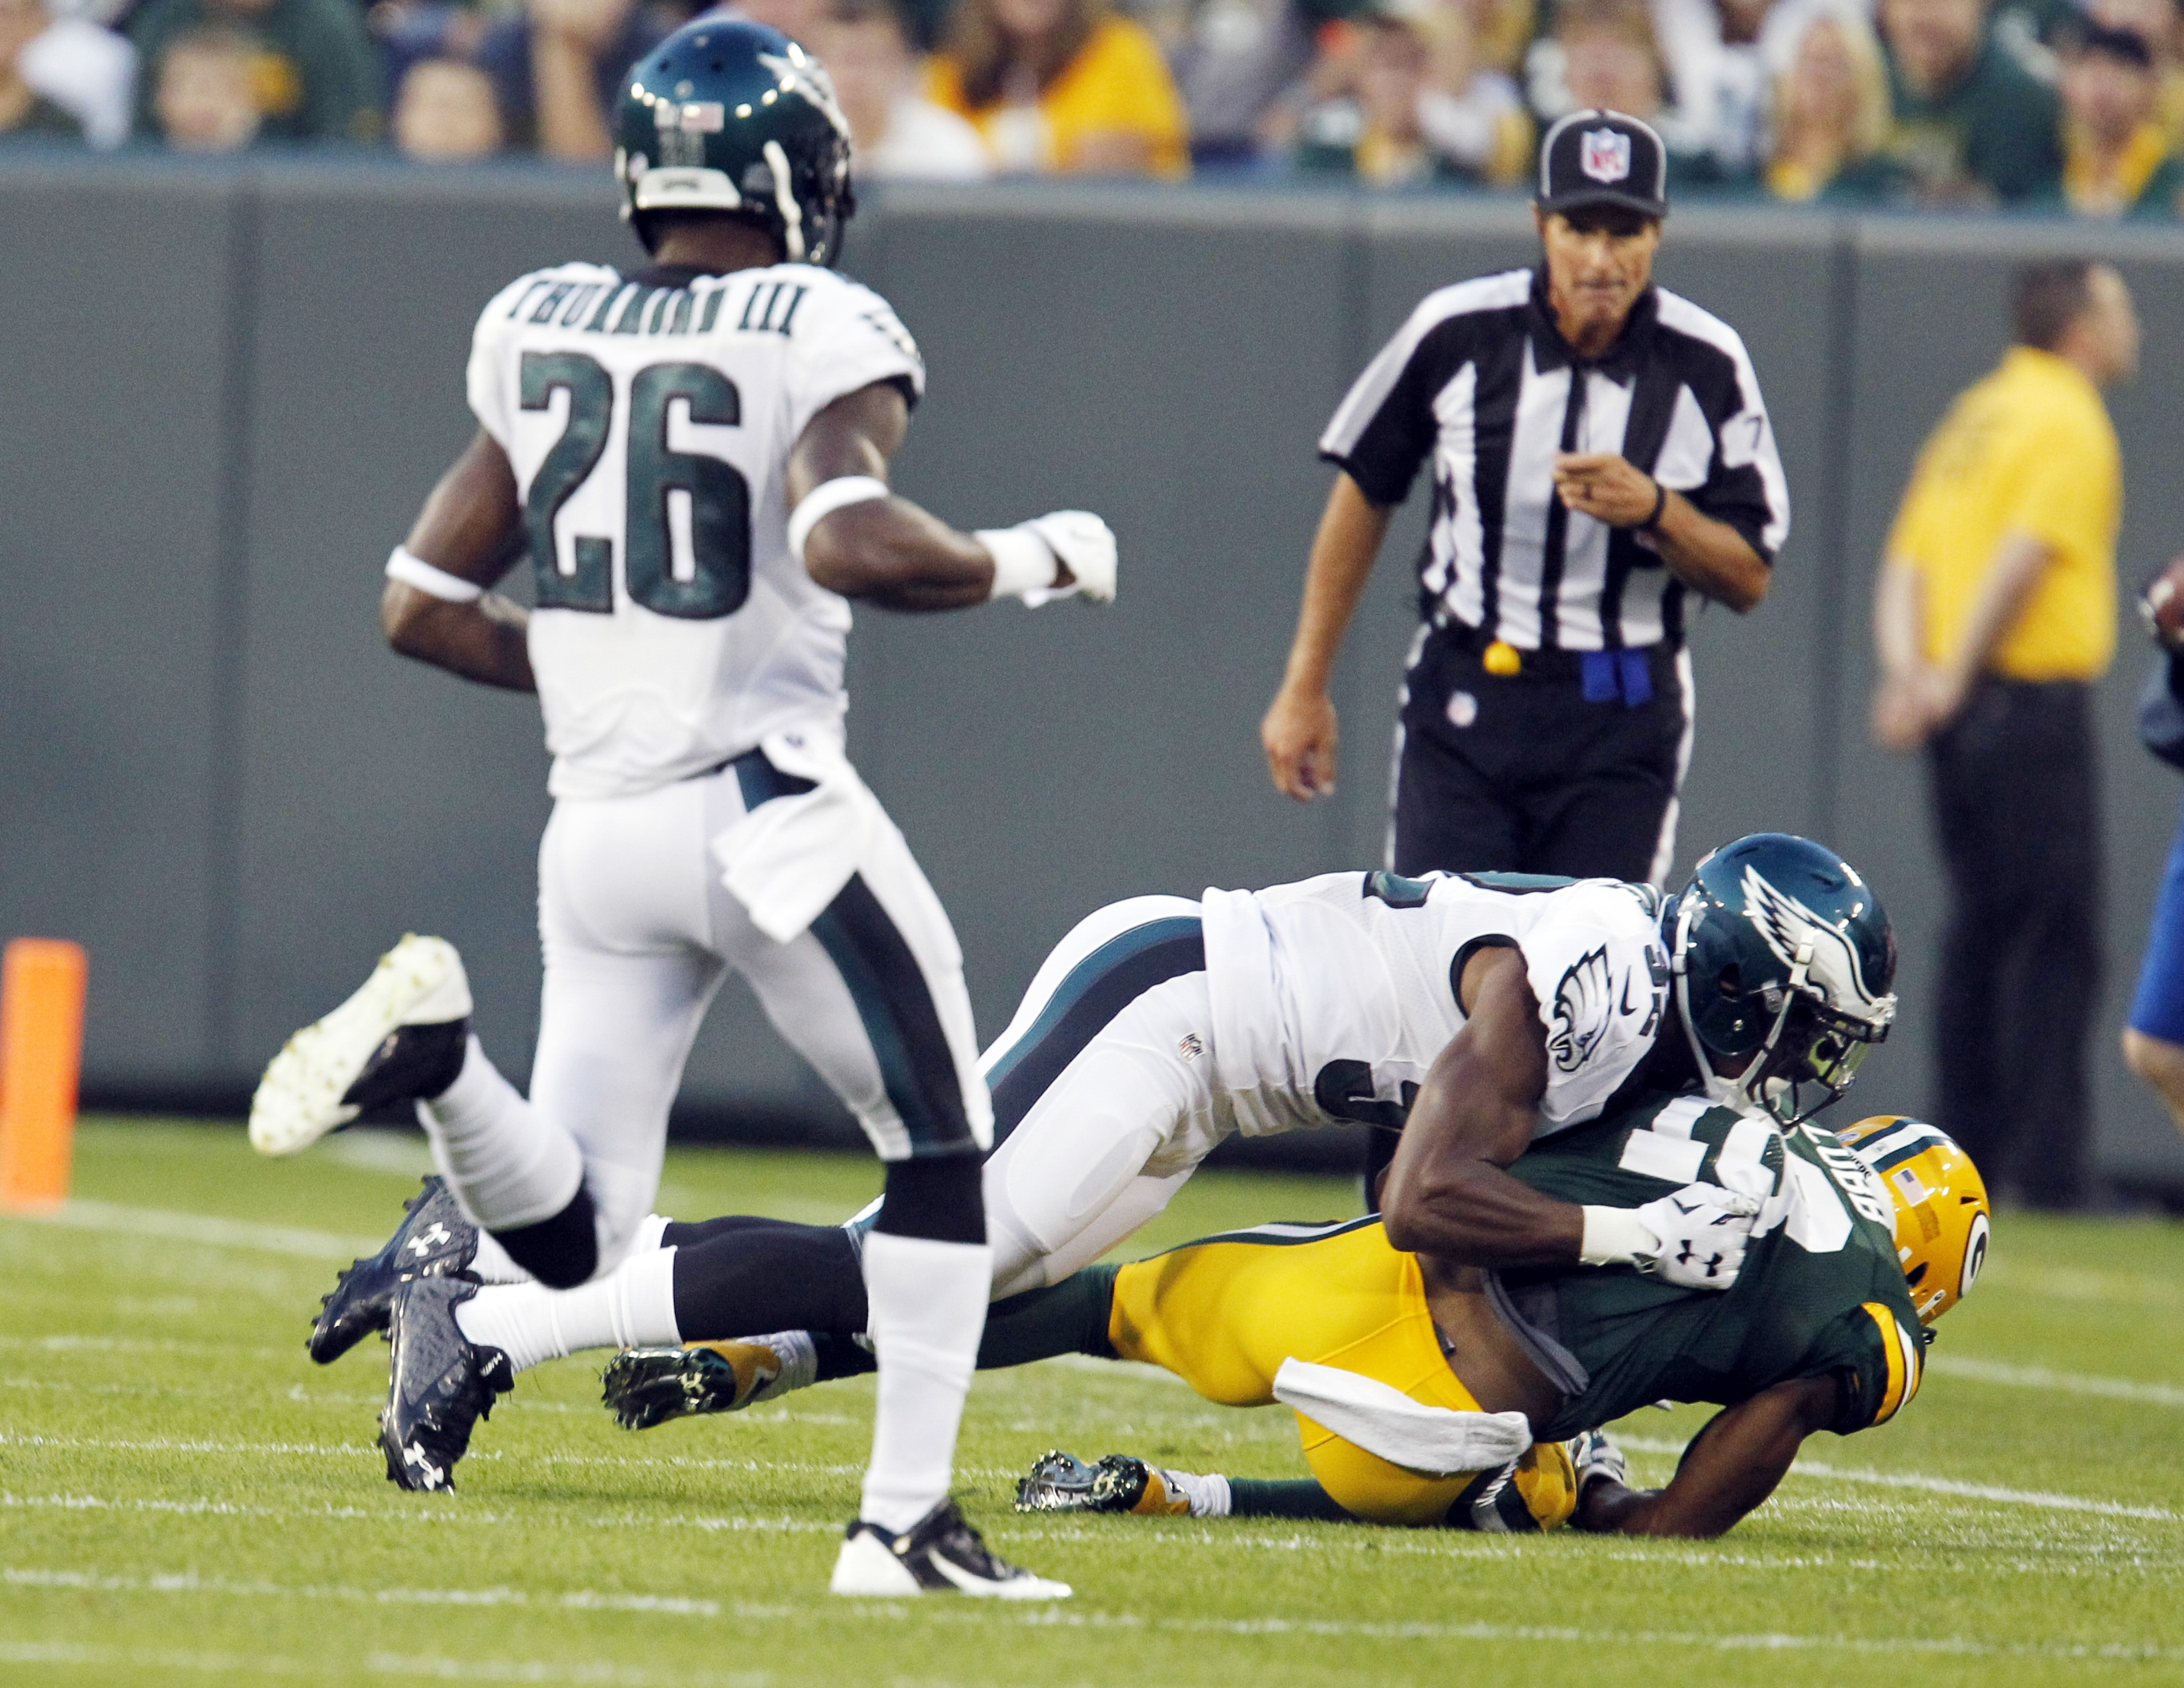 FILE - In this Aug. 29, 2015, file photo, Green Bay Packers' Randall Cobb is knocked down after going up for a pass during the first half of an NFL football game against the Philadelphia Eagles, in Green Bay, Wis. Cobb left the field after the play.  Cobb